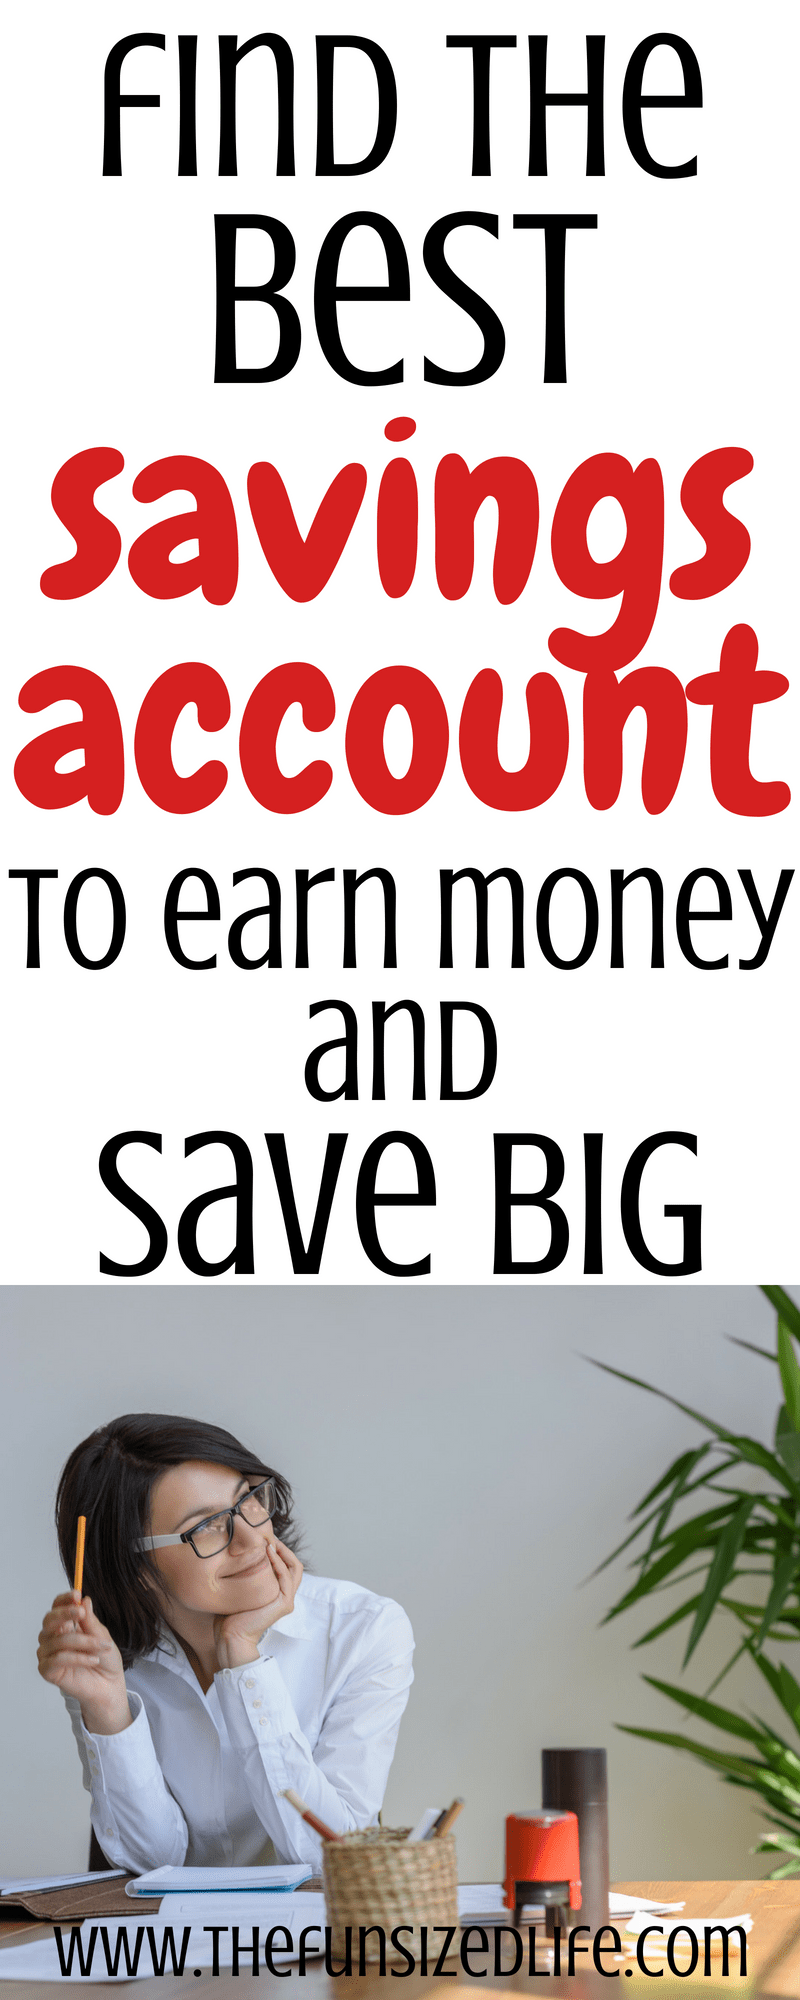 So many savings accounts. Which one is the right one? You can invest, save and earn interest! #savingsaccounts #saving #savemoney #banking #onlinebanking